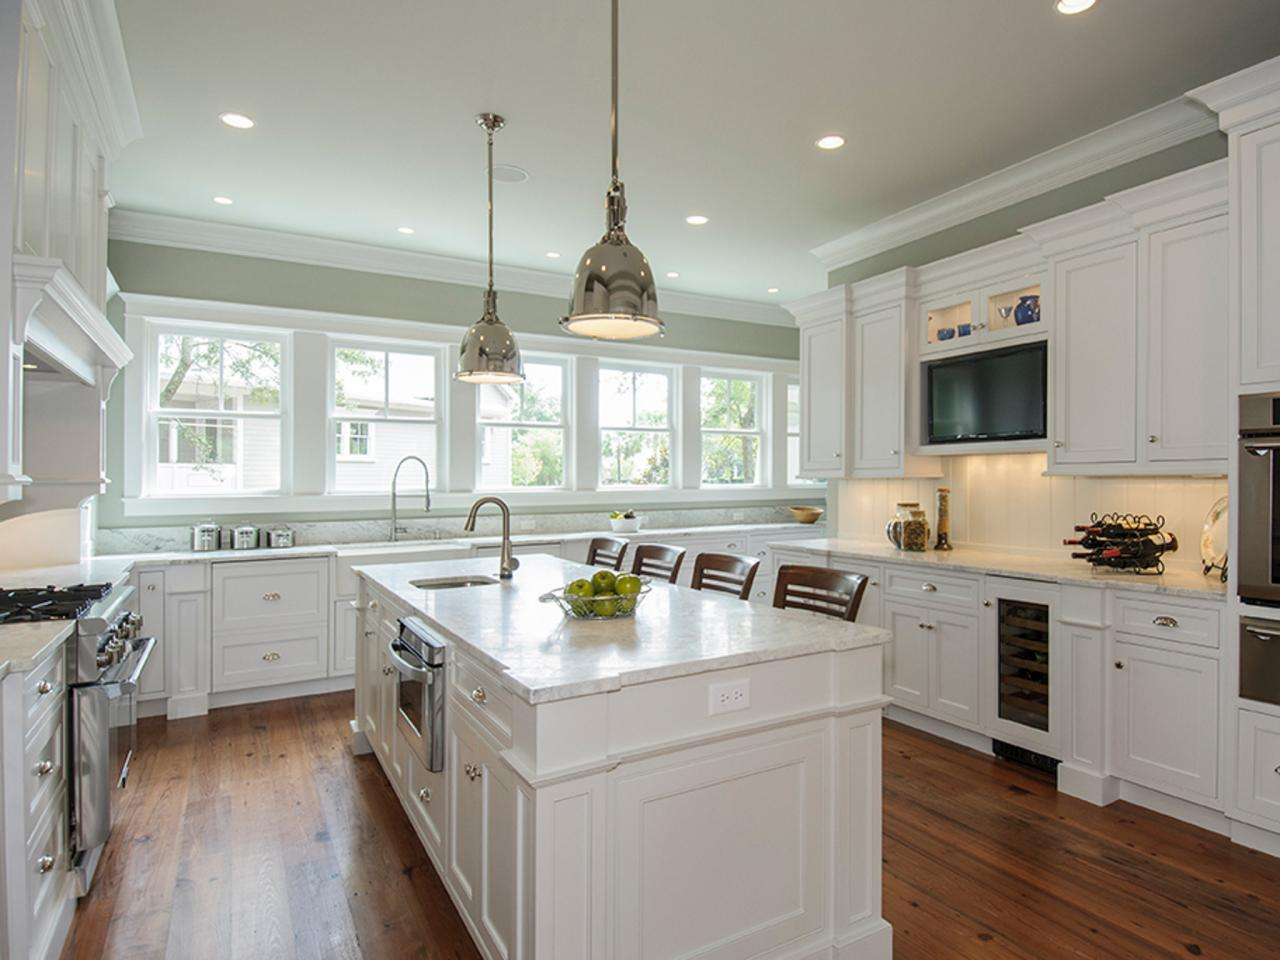 Ideal Design of White Cabinets Kitchen also Shiny Top and Ligh Fixture